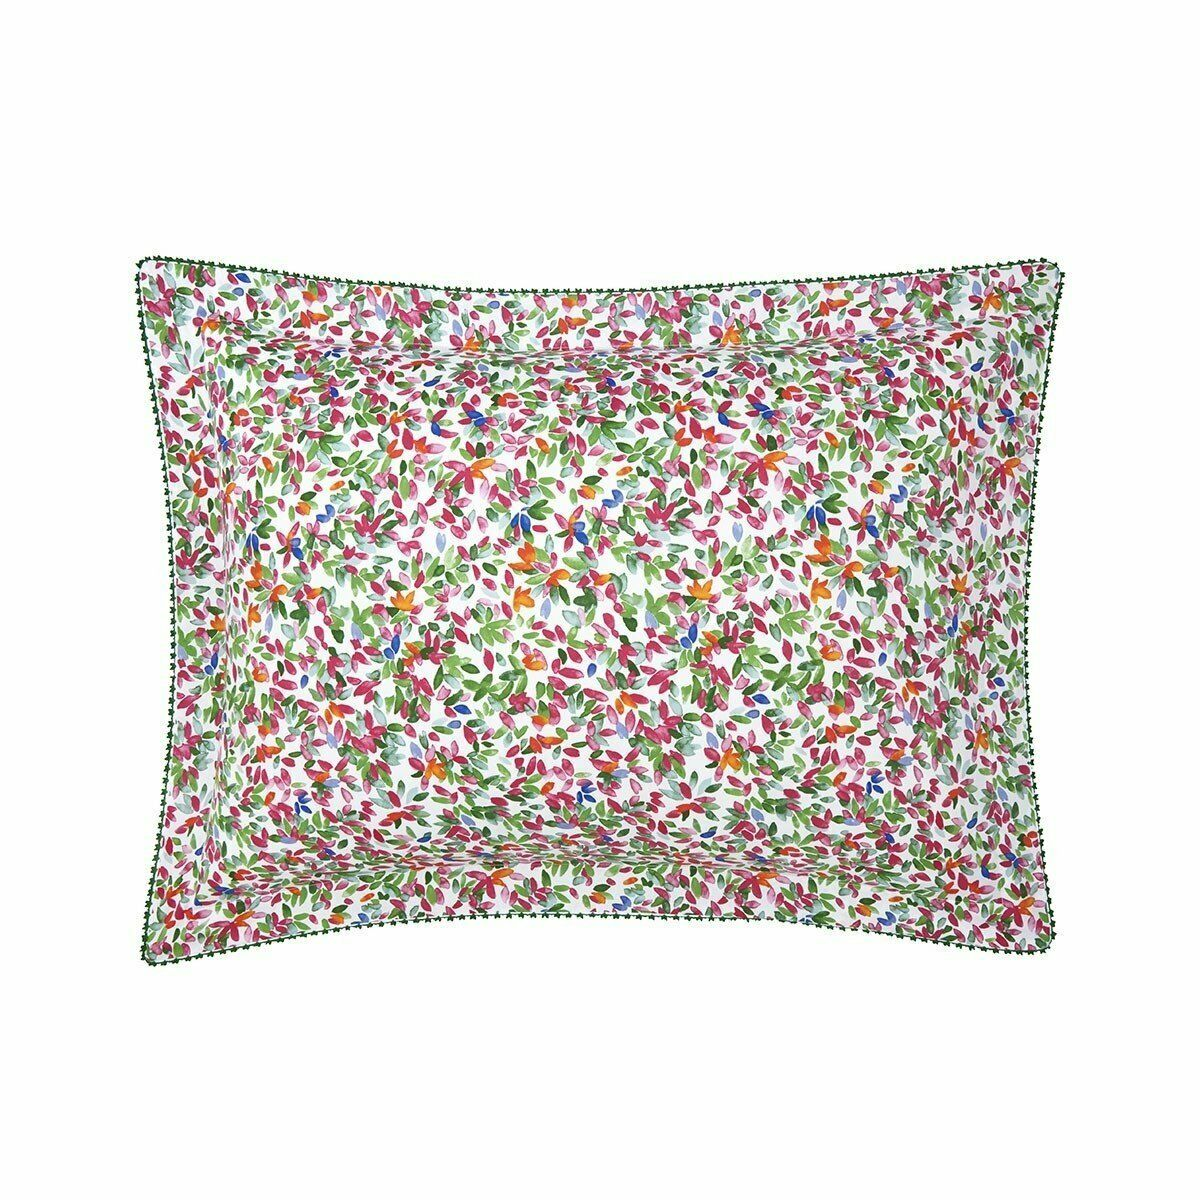 Detektiv Conan Bettwäsche Yves Delorme France Balades Cotton Sateen Pillow Sham Floral